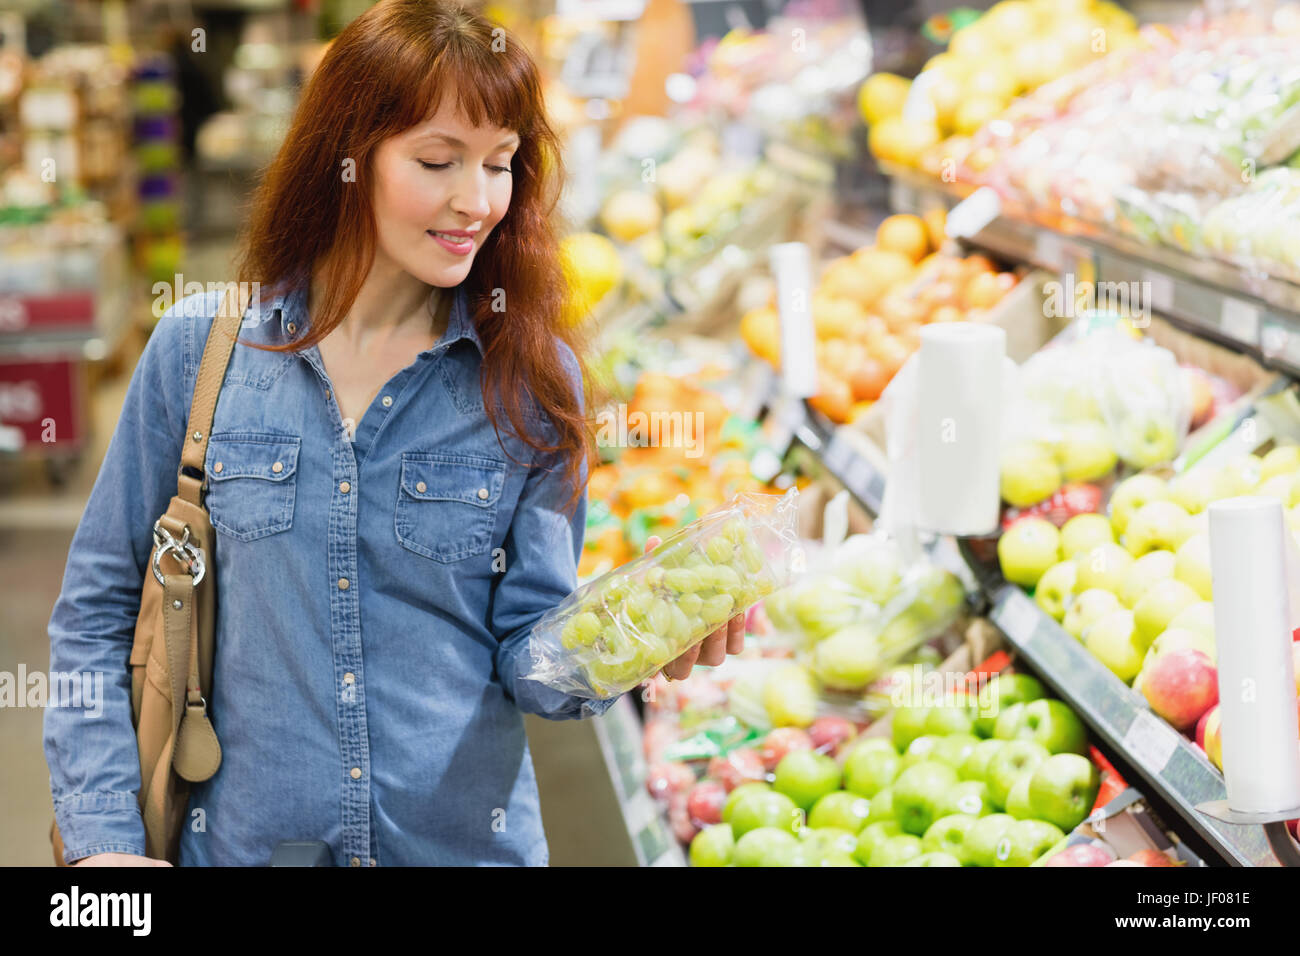 Smiling customer holding a box of grapes - Stock Image